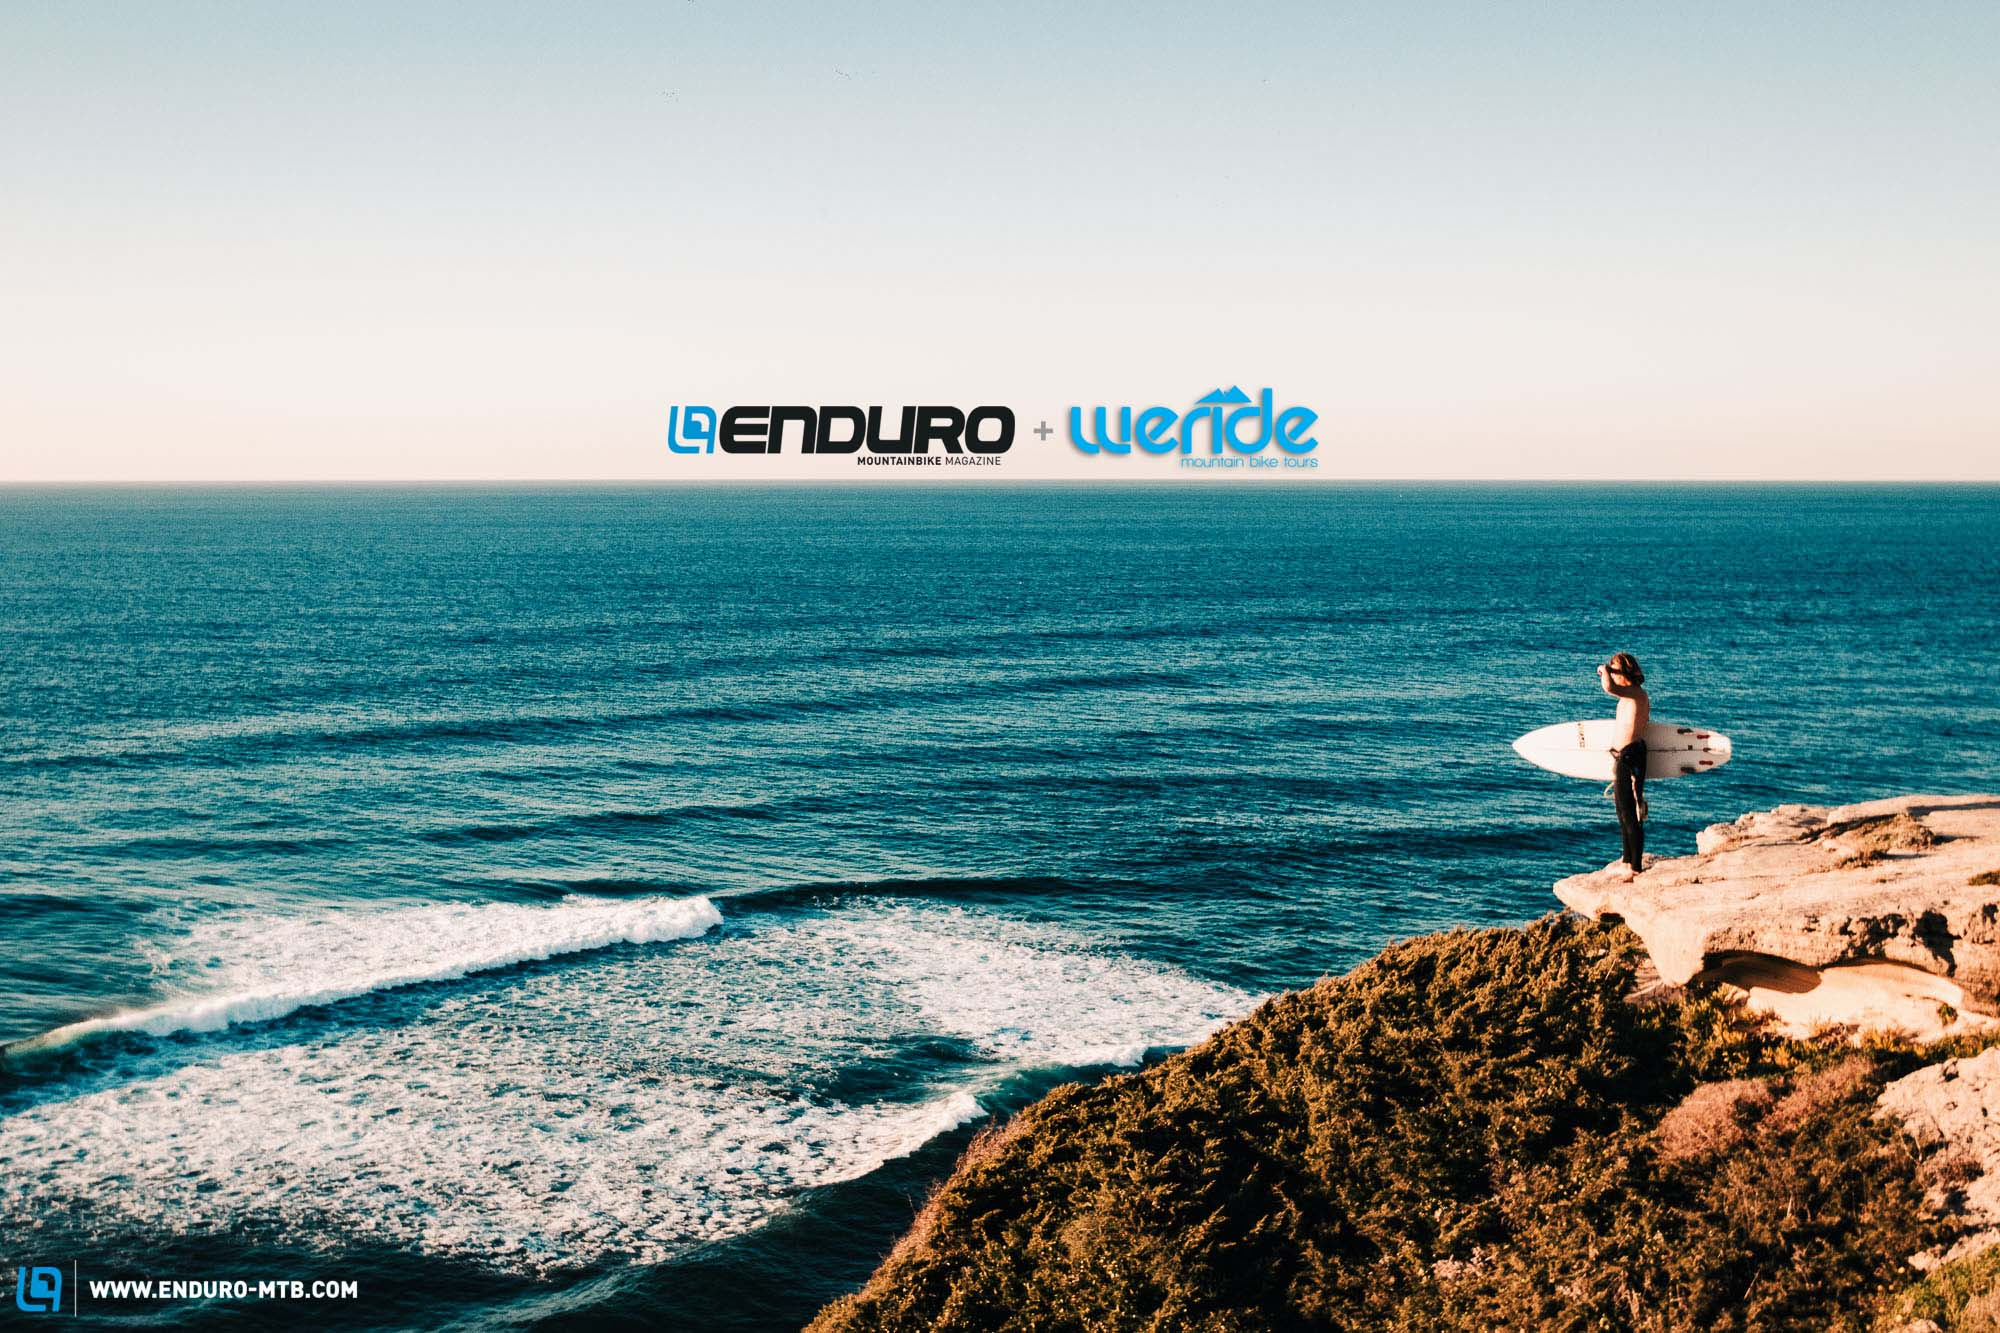 SURFING TRAILS AND WAVES IN PORTUGAL